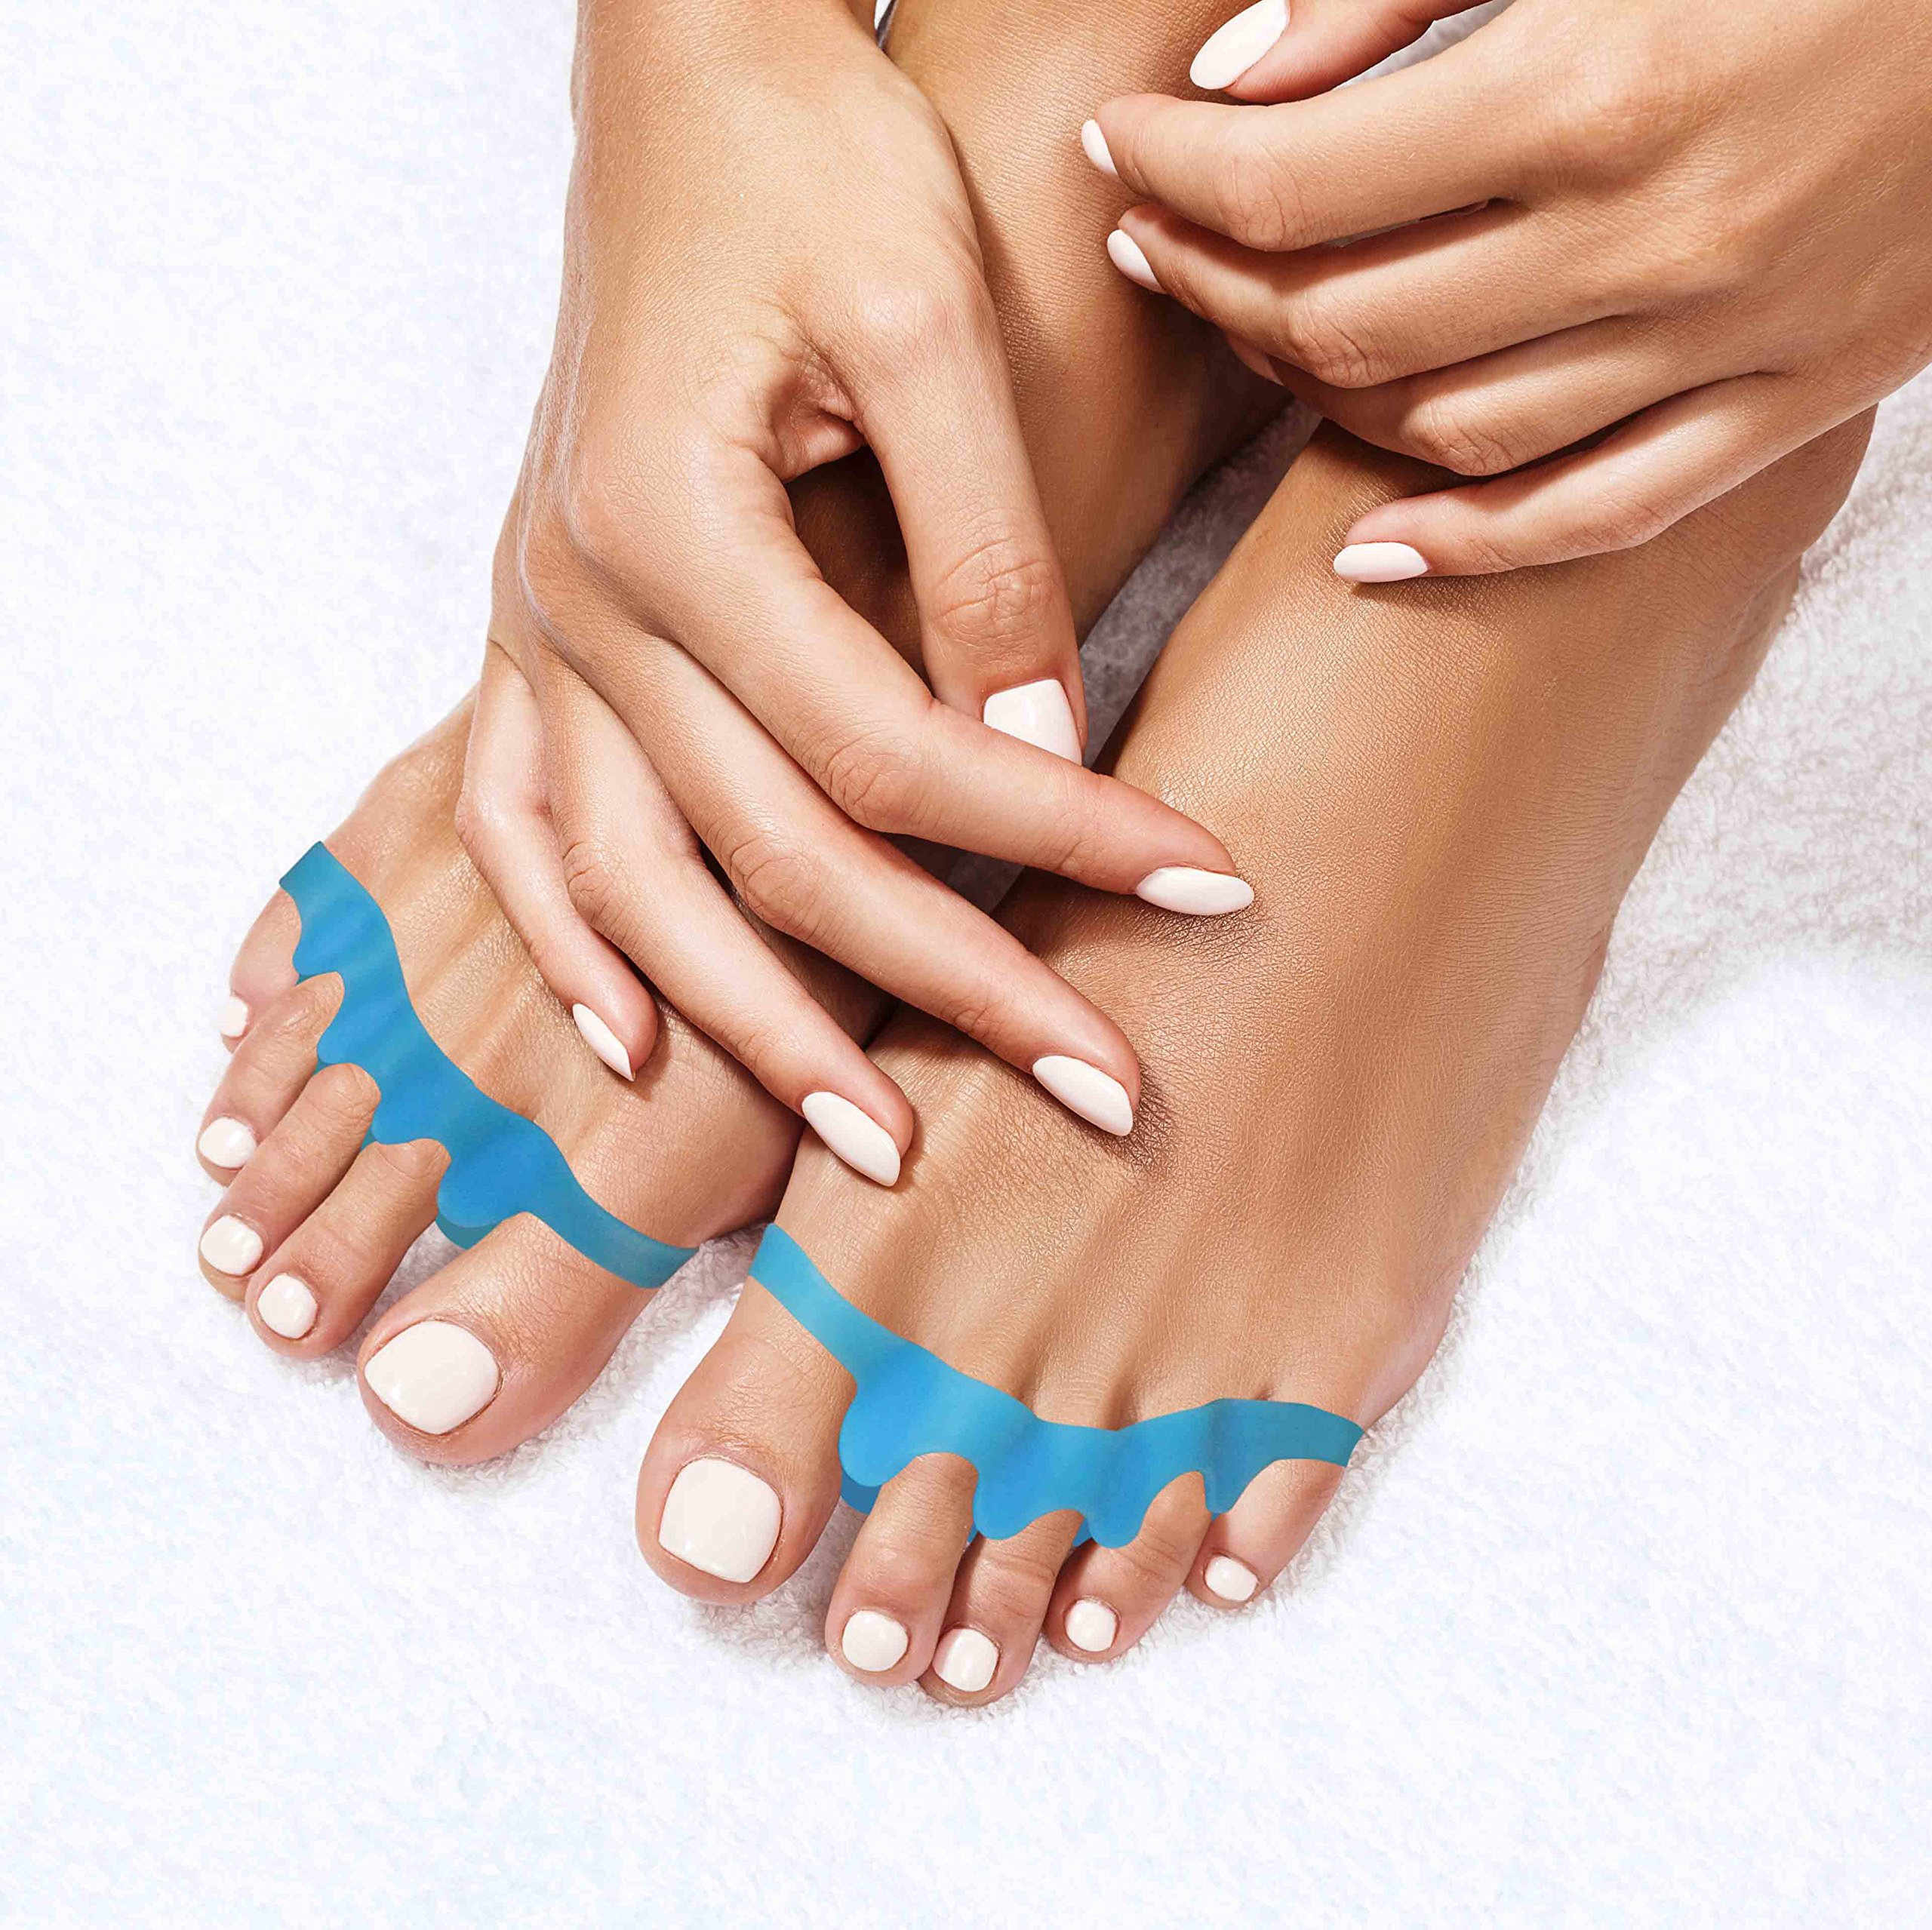 Toe Separators By Pedicura – Gel Toe Stretcher For Bunions & Overlapping Toes – Toe Straightener With Anti-Inflammatory Essential Oils For Pain Relief – Ergonomic Design For Sports Activities (Blue) by Pedicura (Image #1)